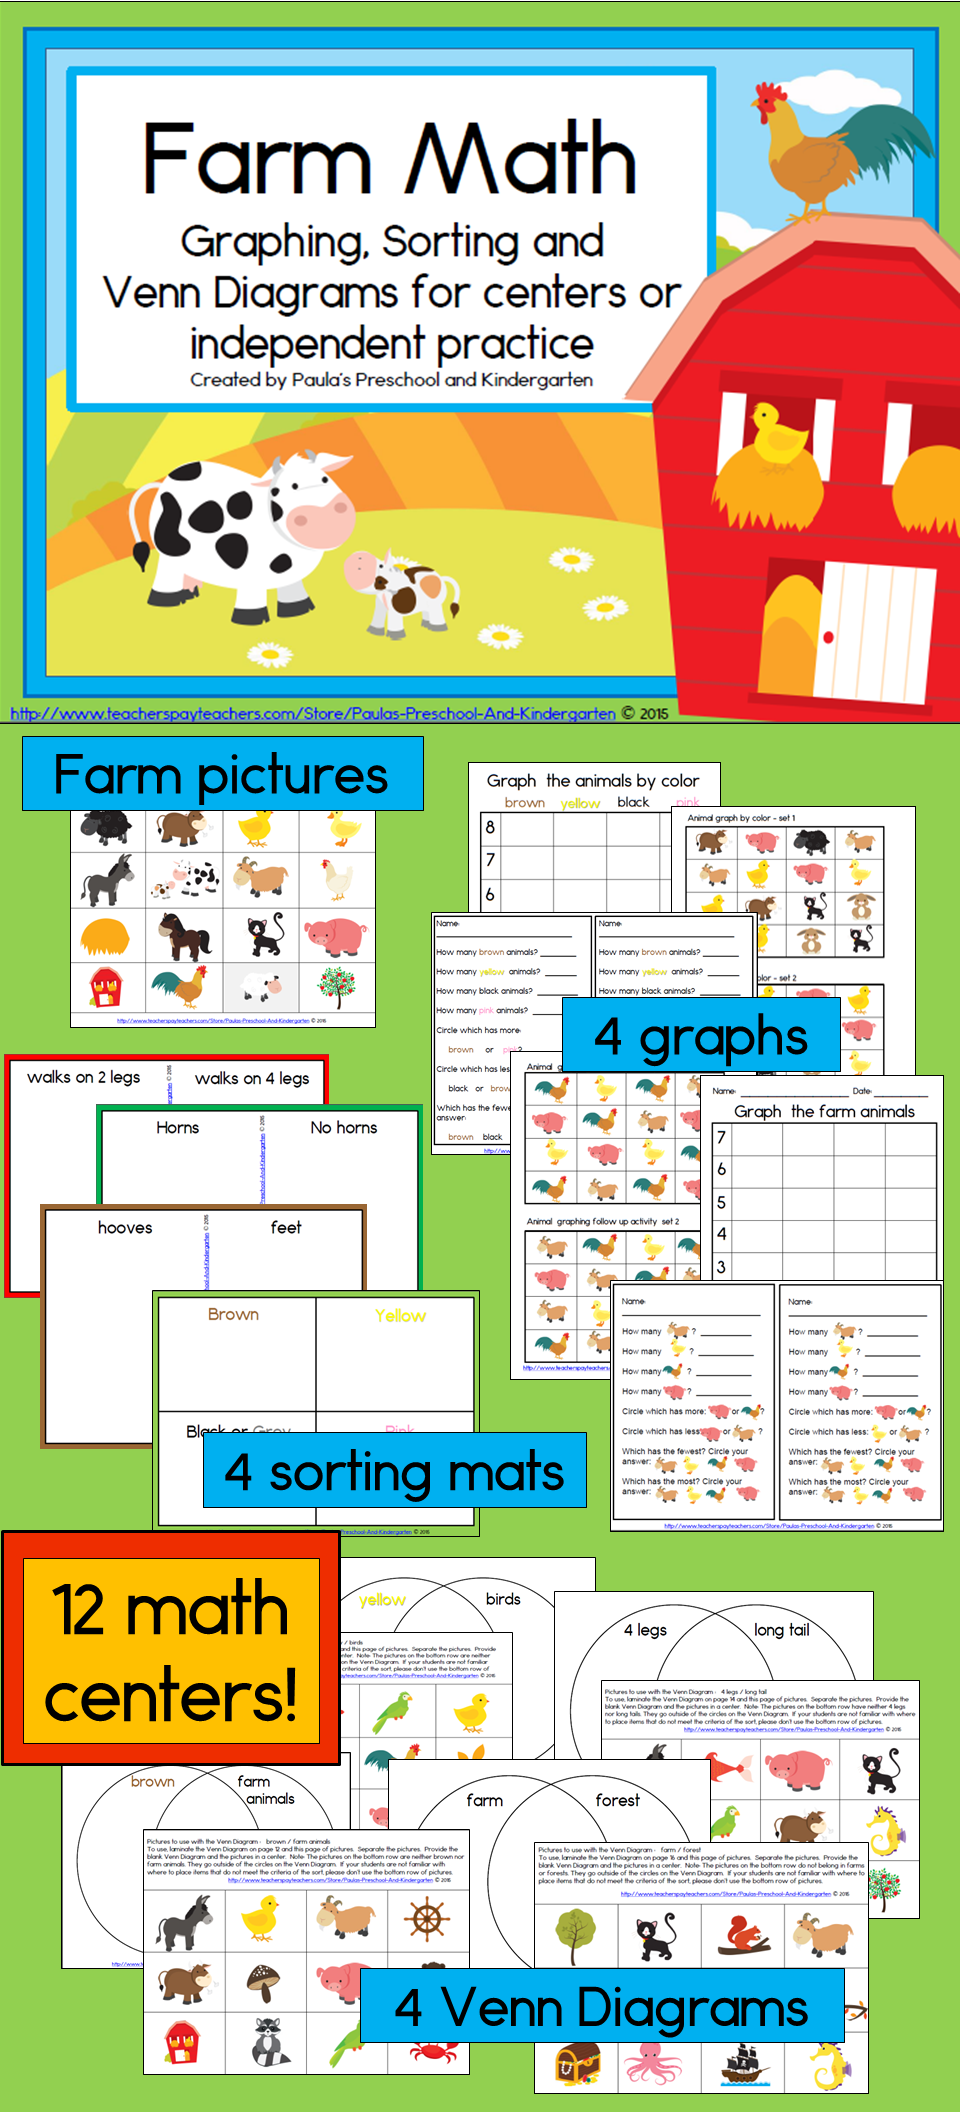 sorting graphing and venn diagrams with a farm theme will engage